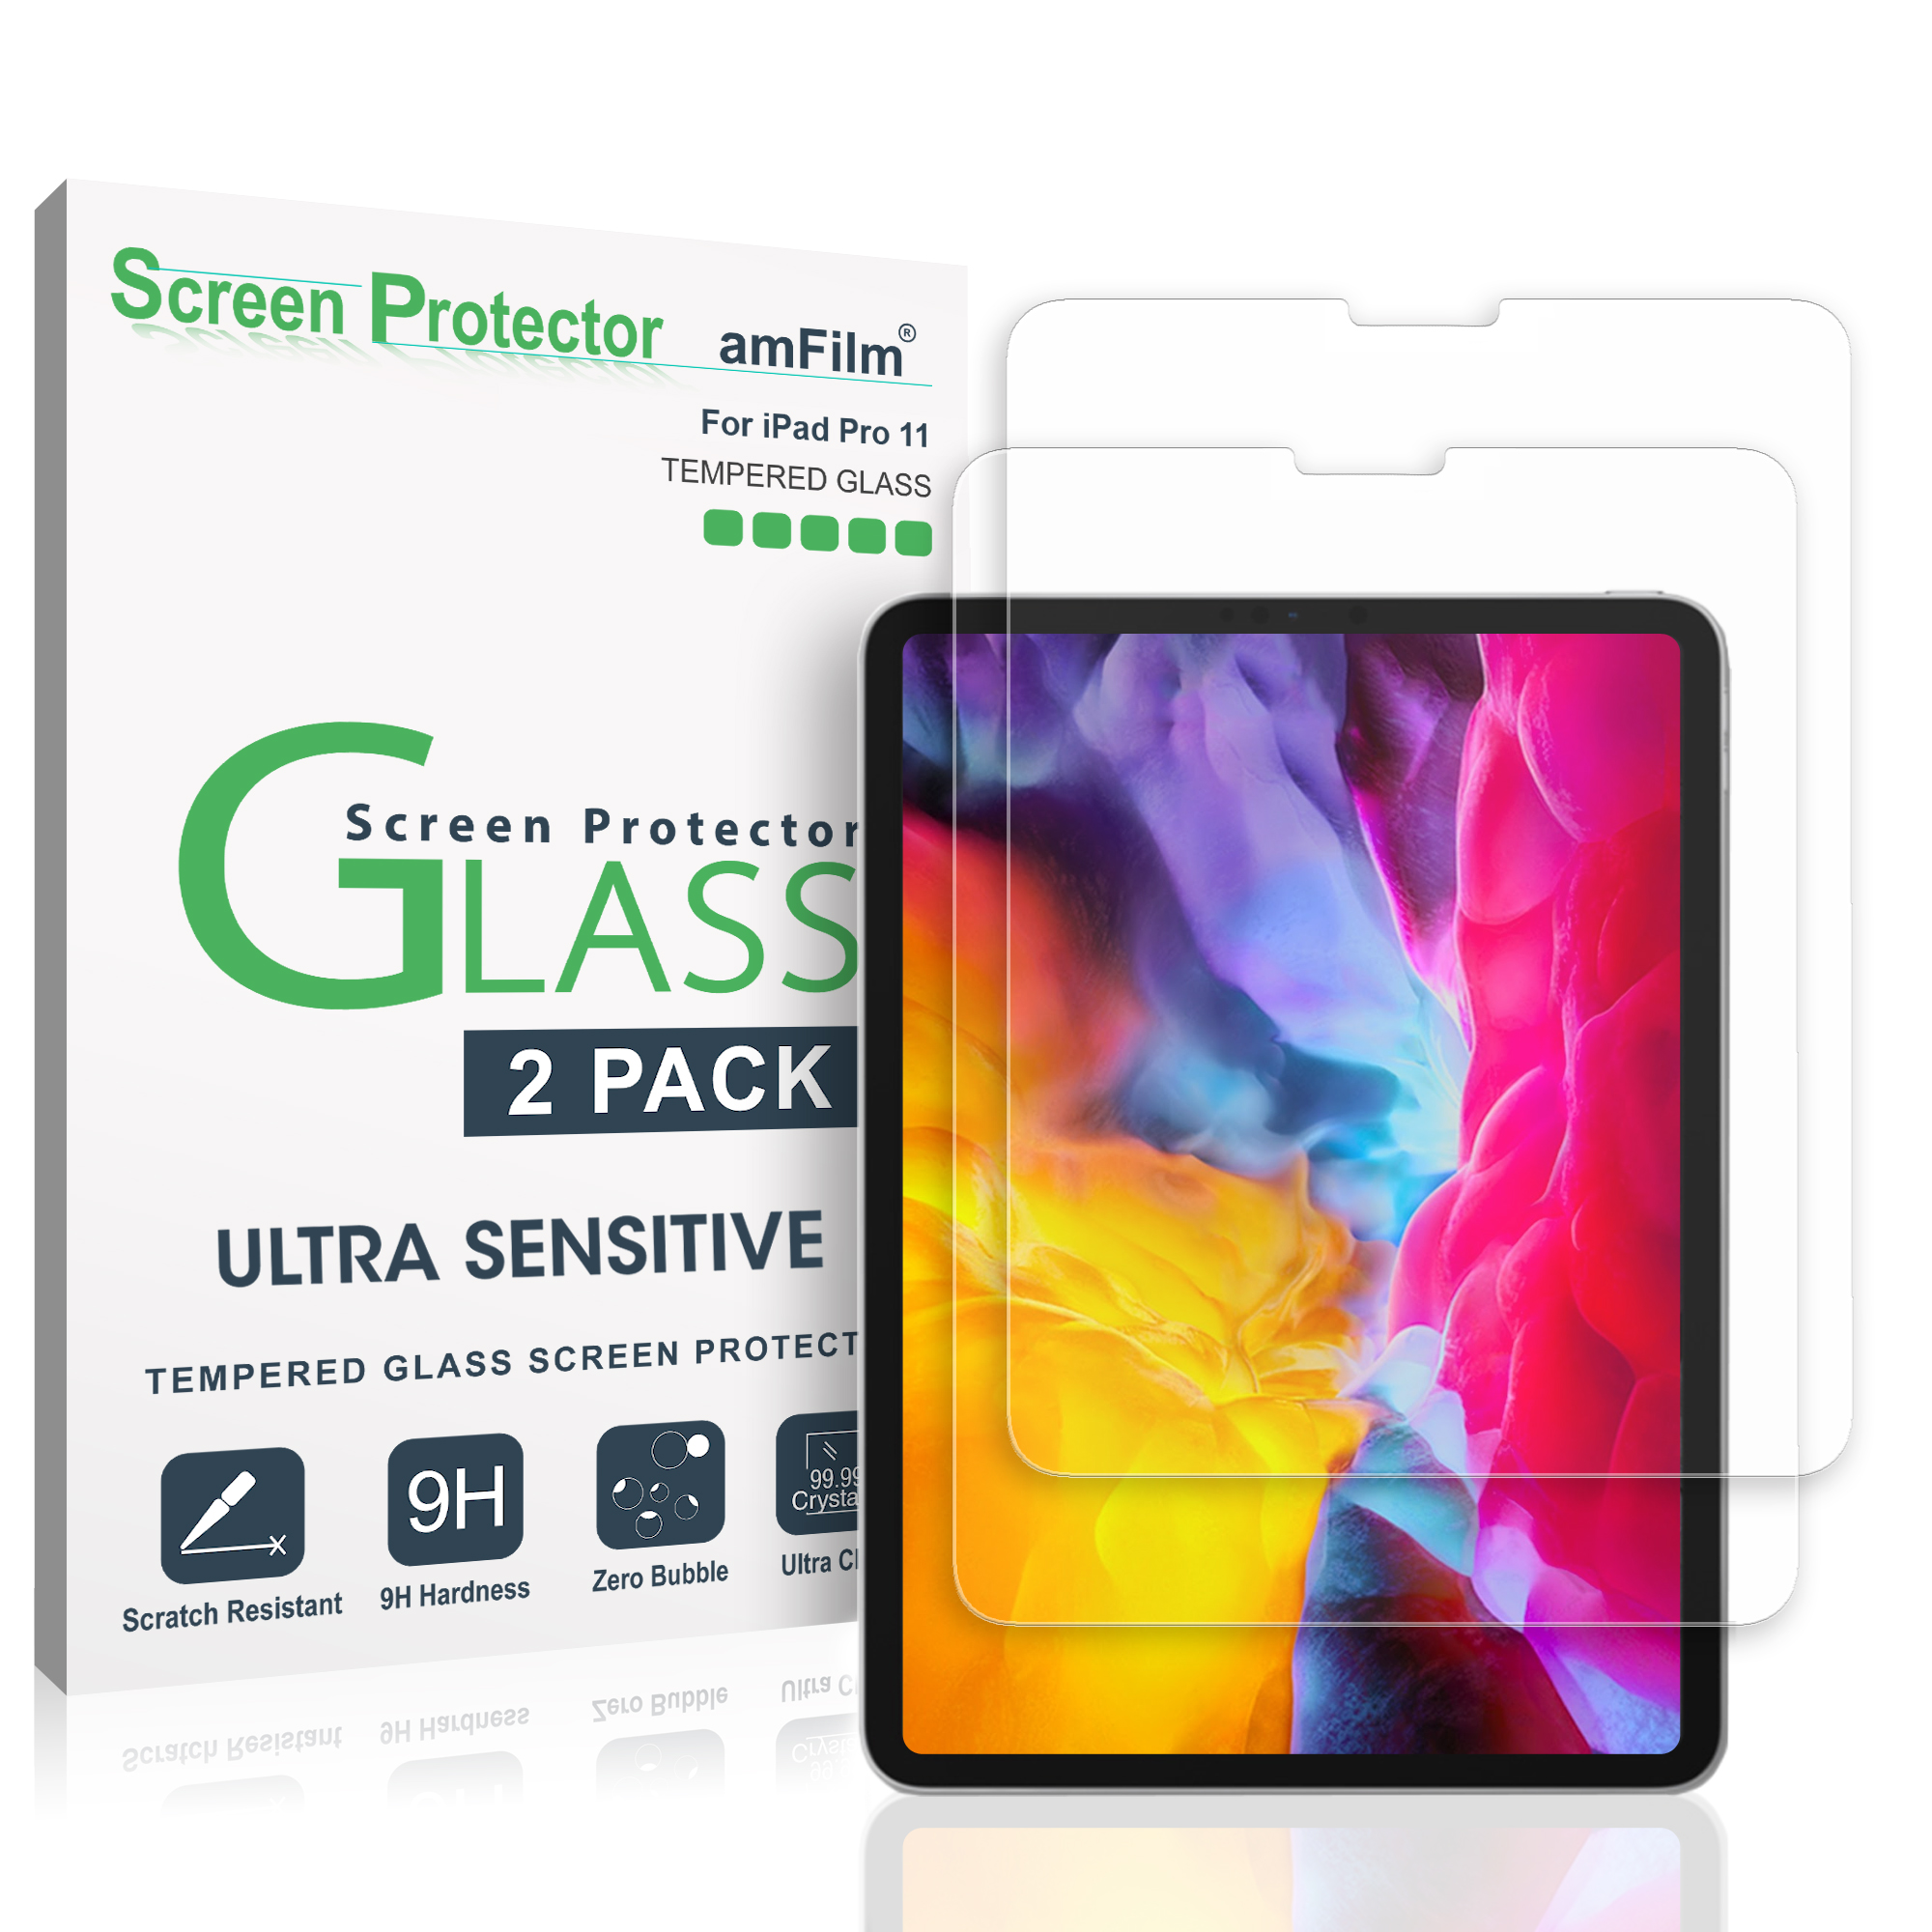 11 inches 2018 Anti Scratch 9H Hardness Tempered Glass Protector for iPad PRO